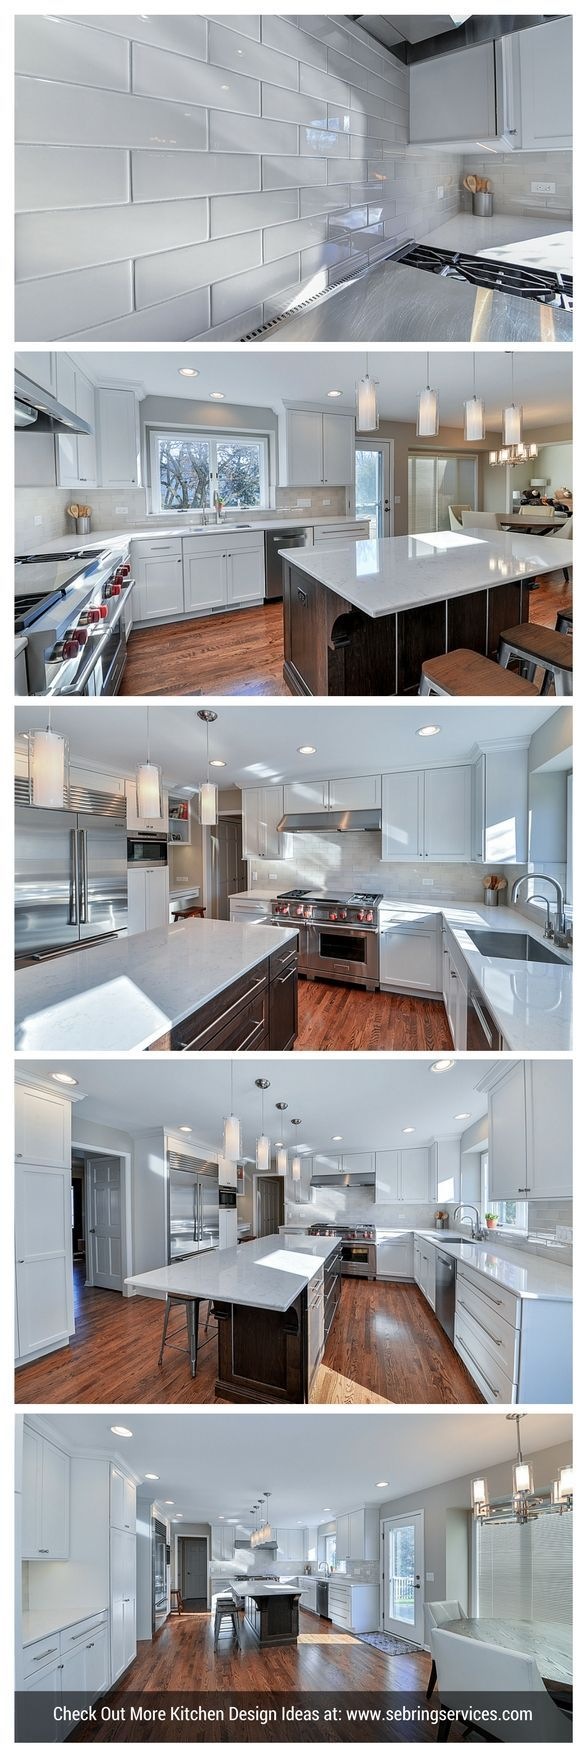 734 best Beautiful Kitchens Ideas images on Pinterest | Beautiful ...